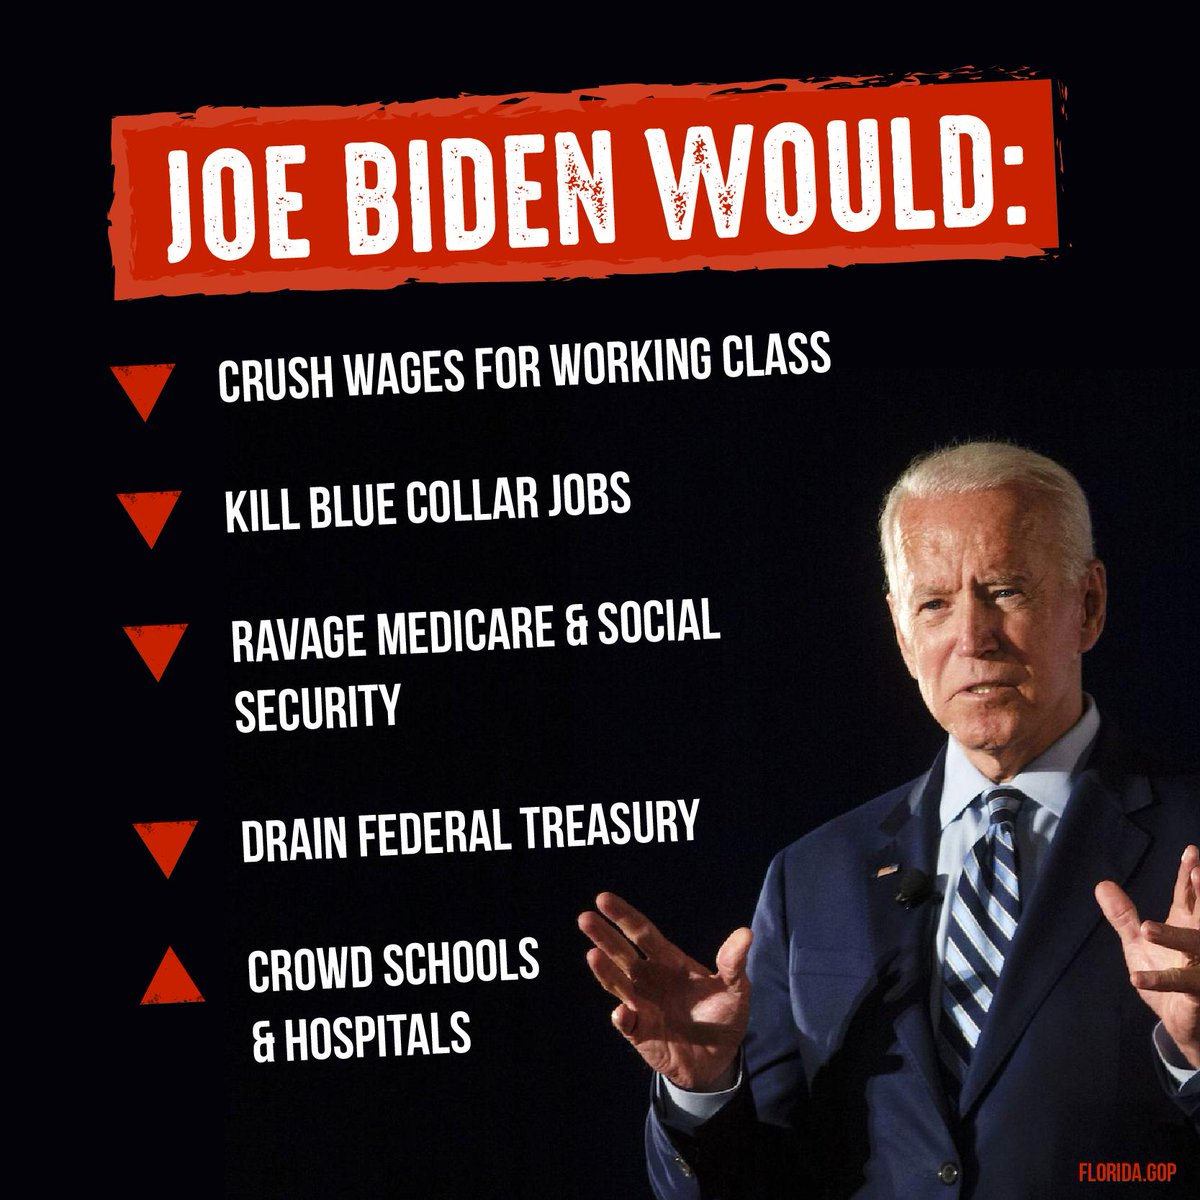 .@JoeBiden vowed to nearly triple immigration if elected. Enough is enough, we must put Americans first.